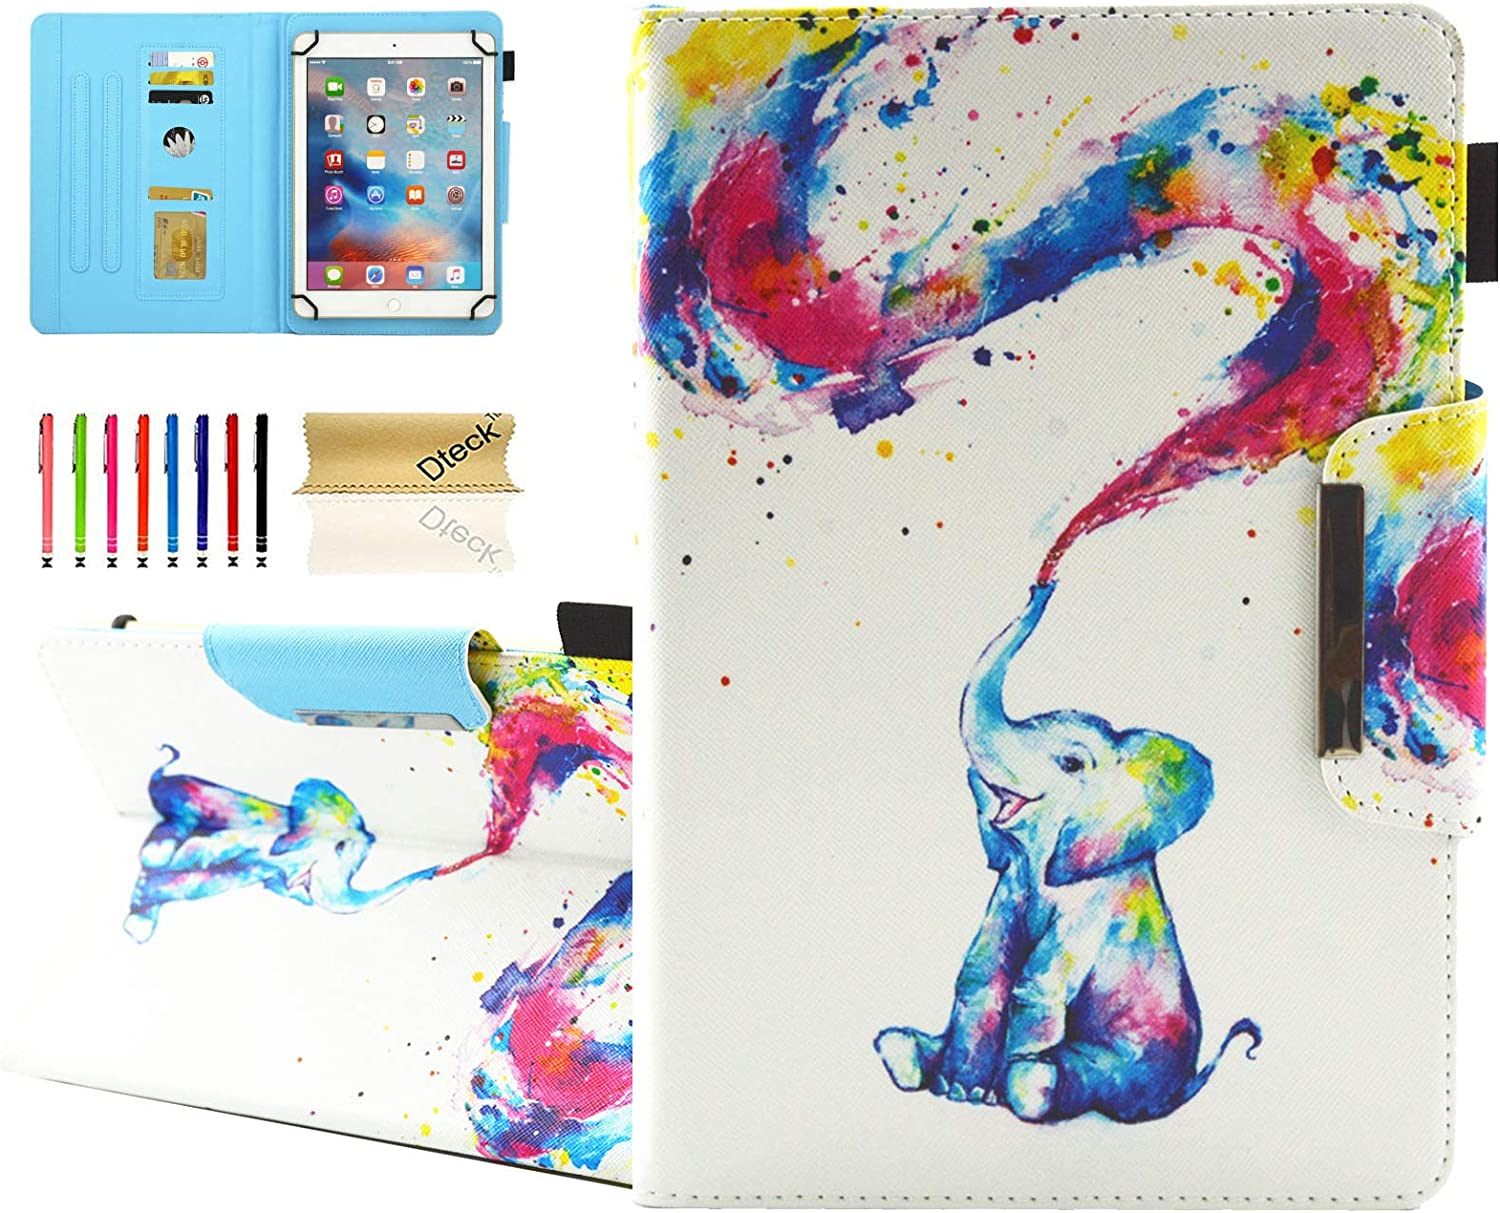 Dteck Universal Case for 7.5-8.5 Inch Tablet - PU Leather Stand Wallet Case Cover for iPad Mini 7.9